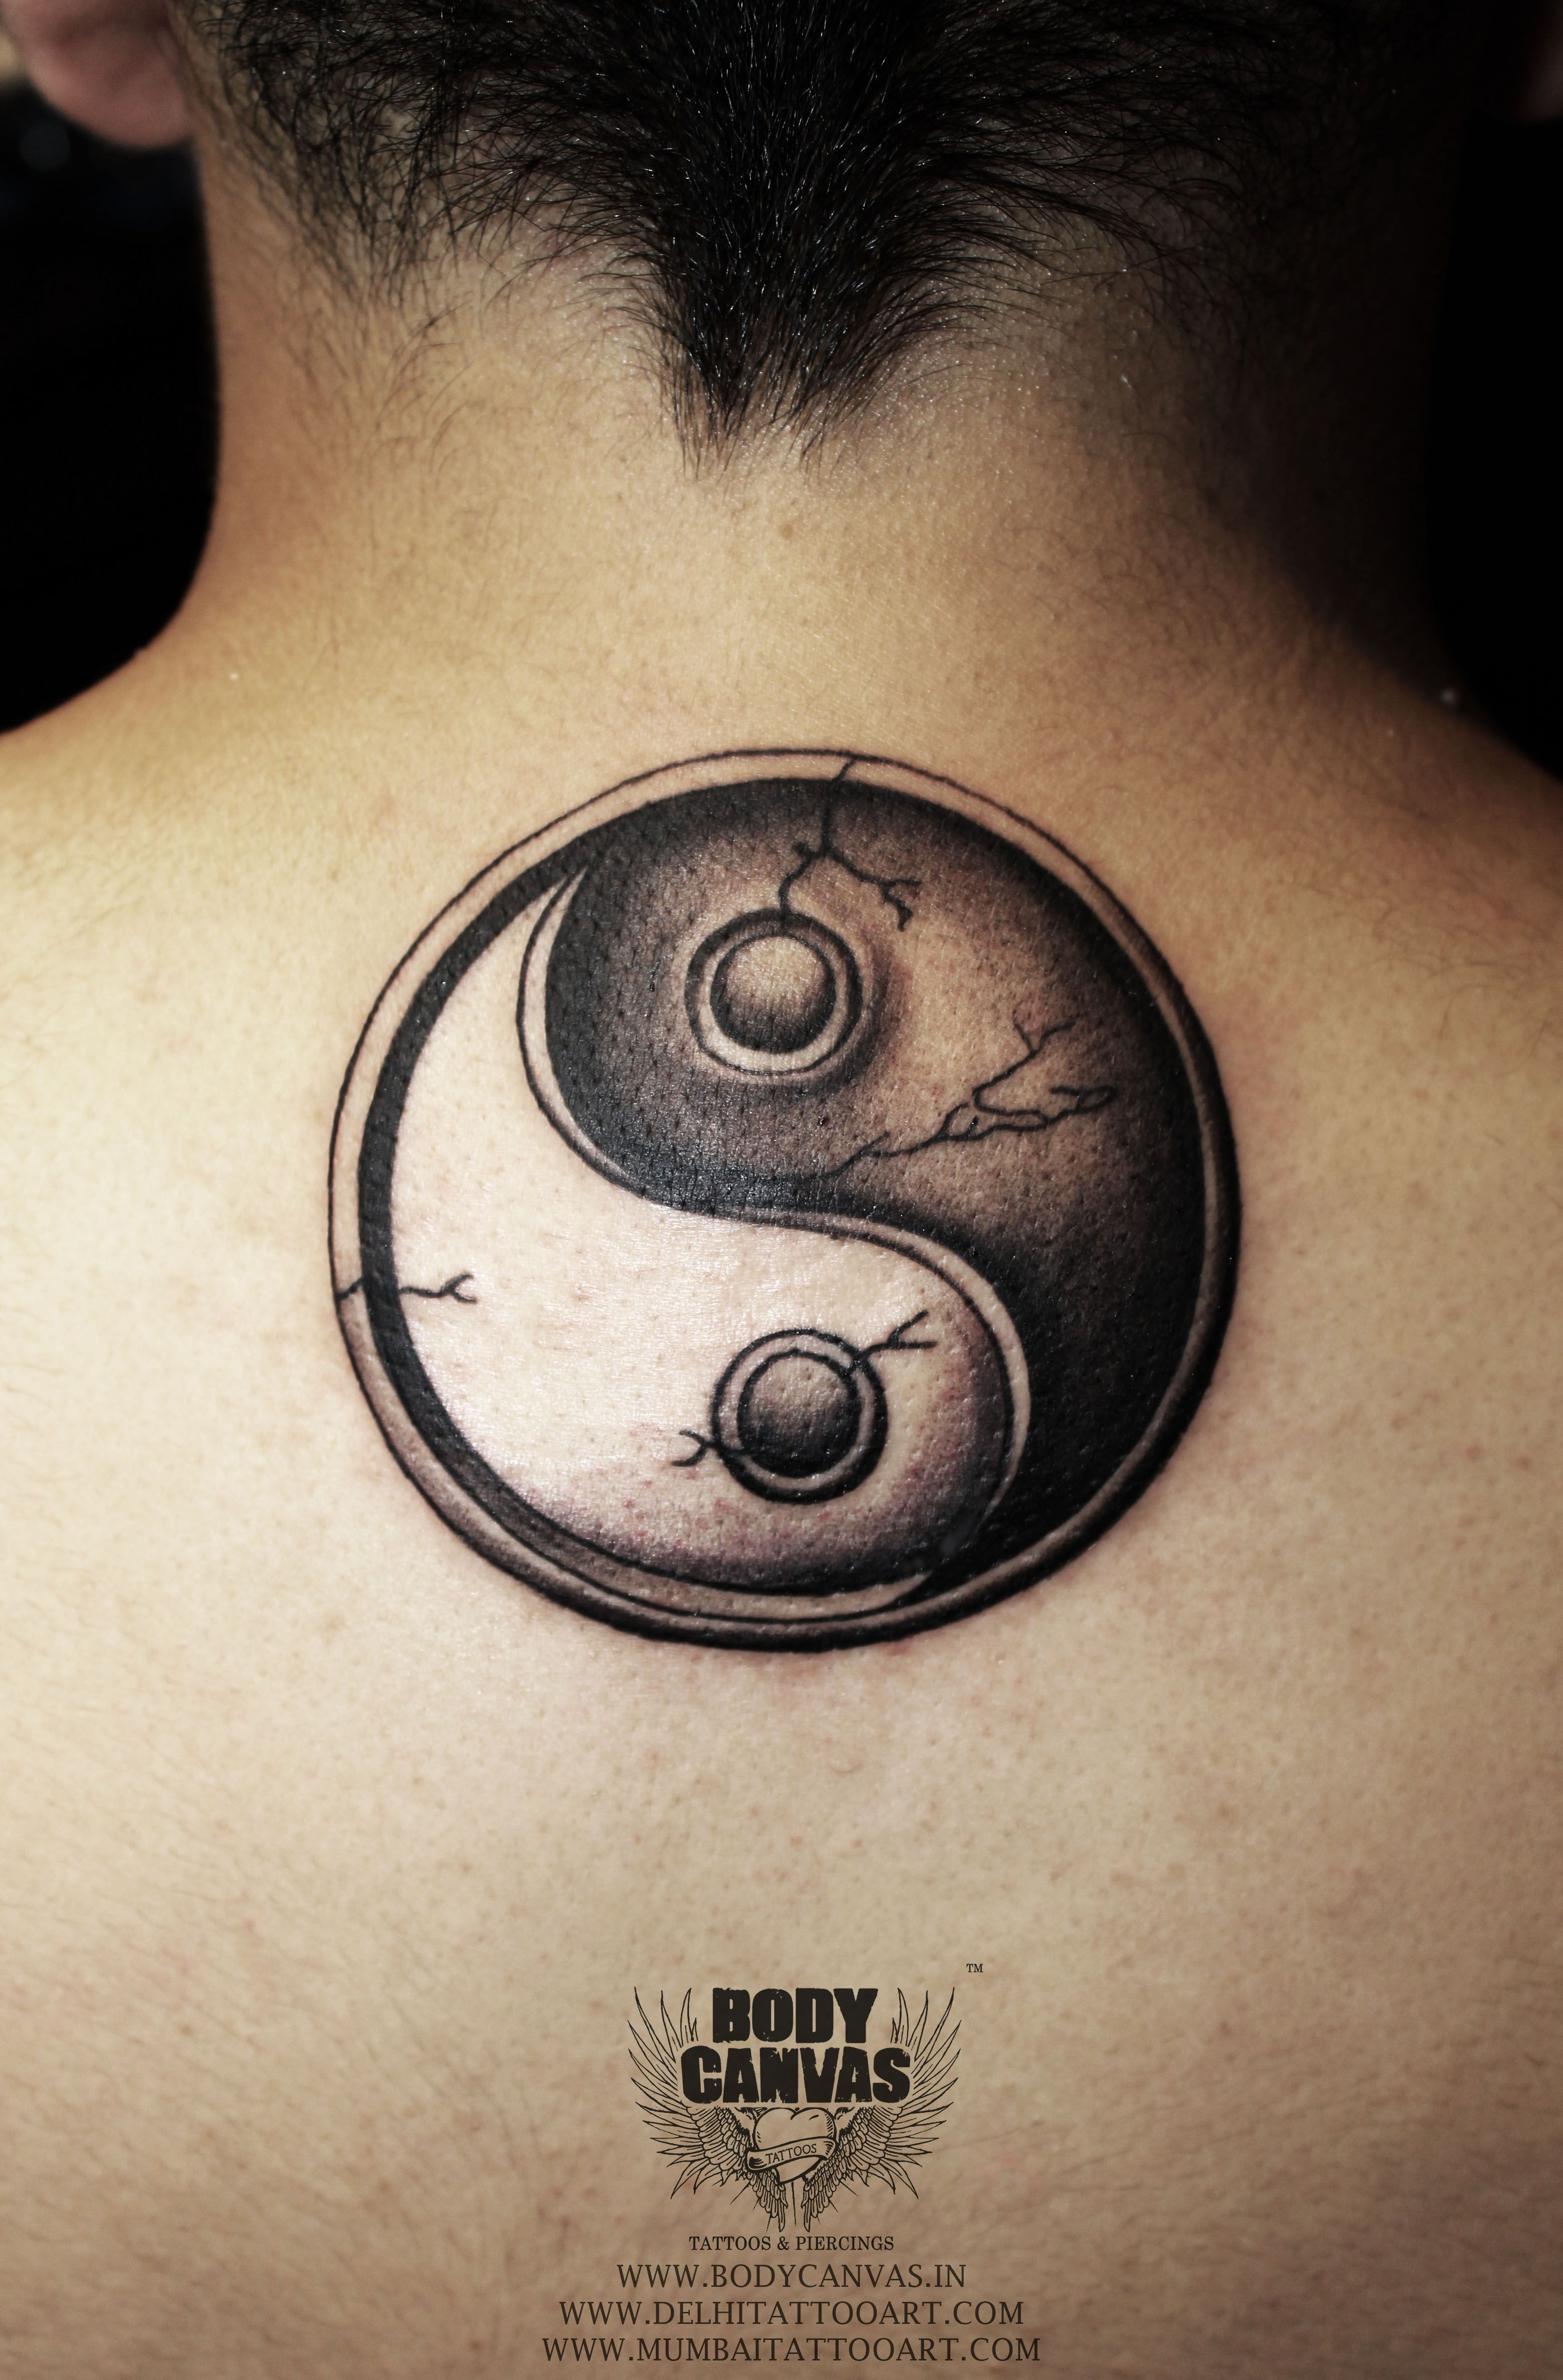 Awesome Tattoo Design Yin And Yang Good And Bad Tattoo Idea Bad Tattoos Tattoo Shop Tattoo Designs